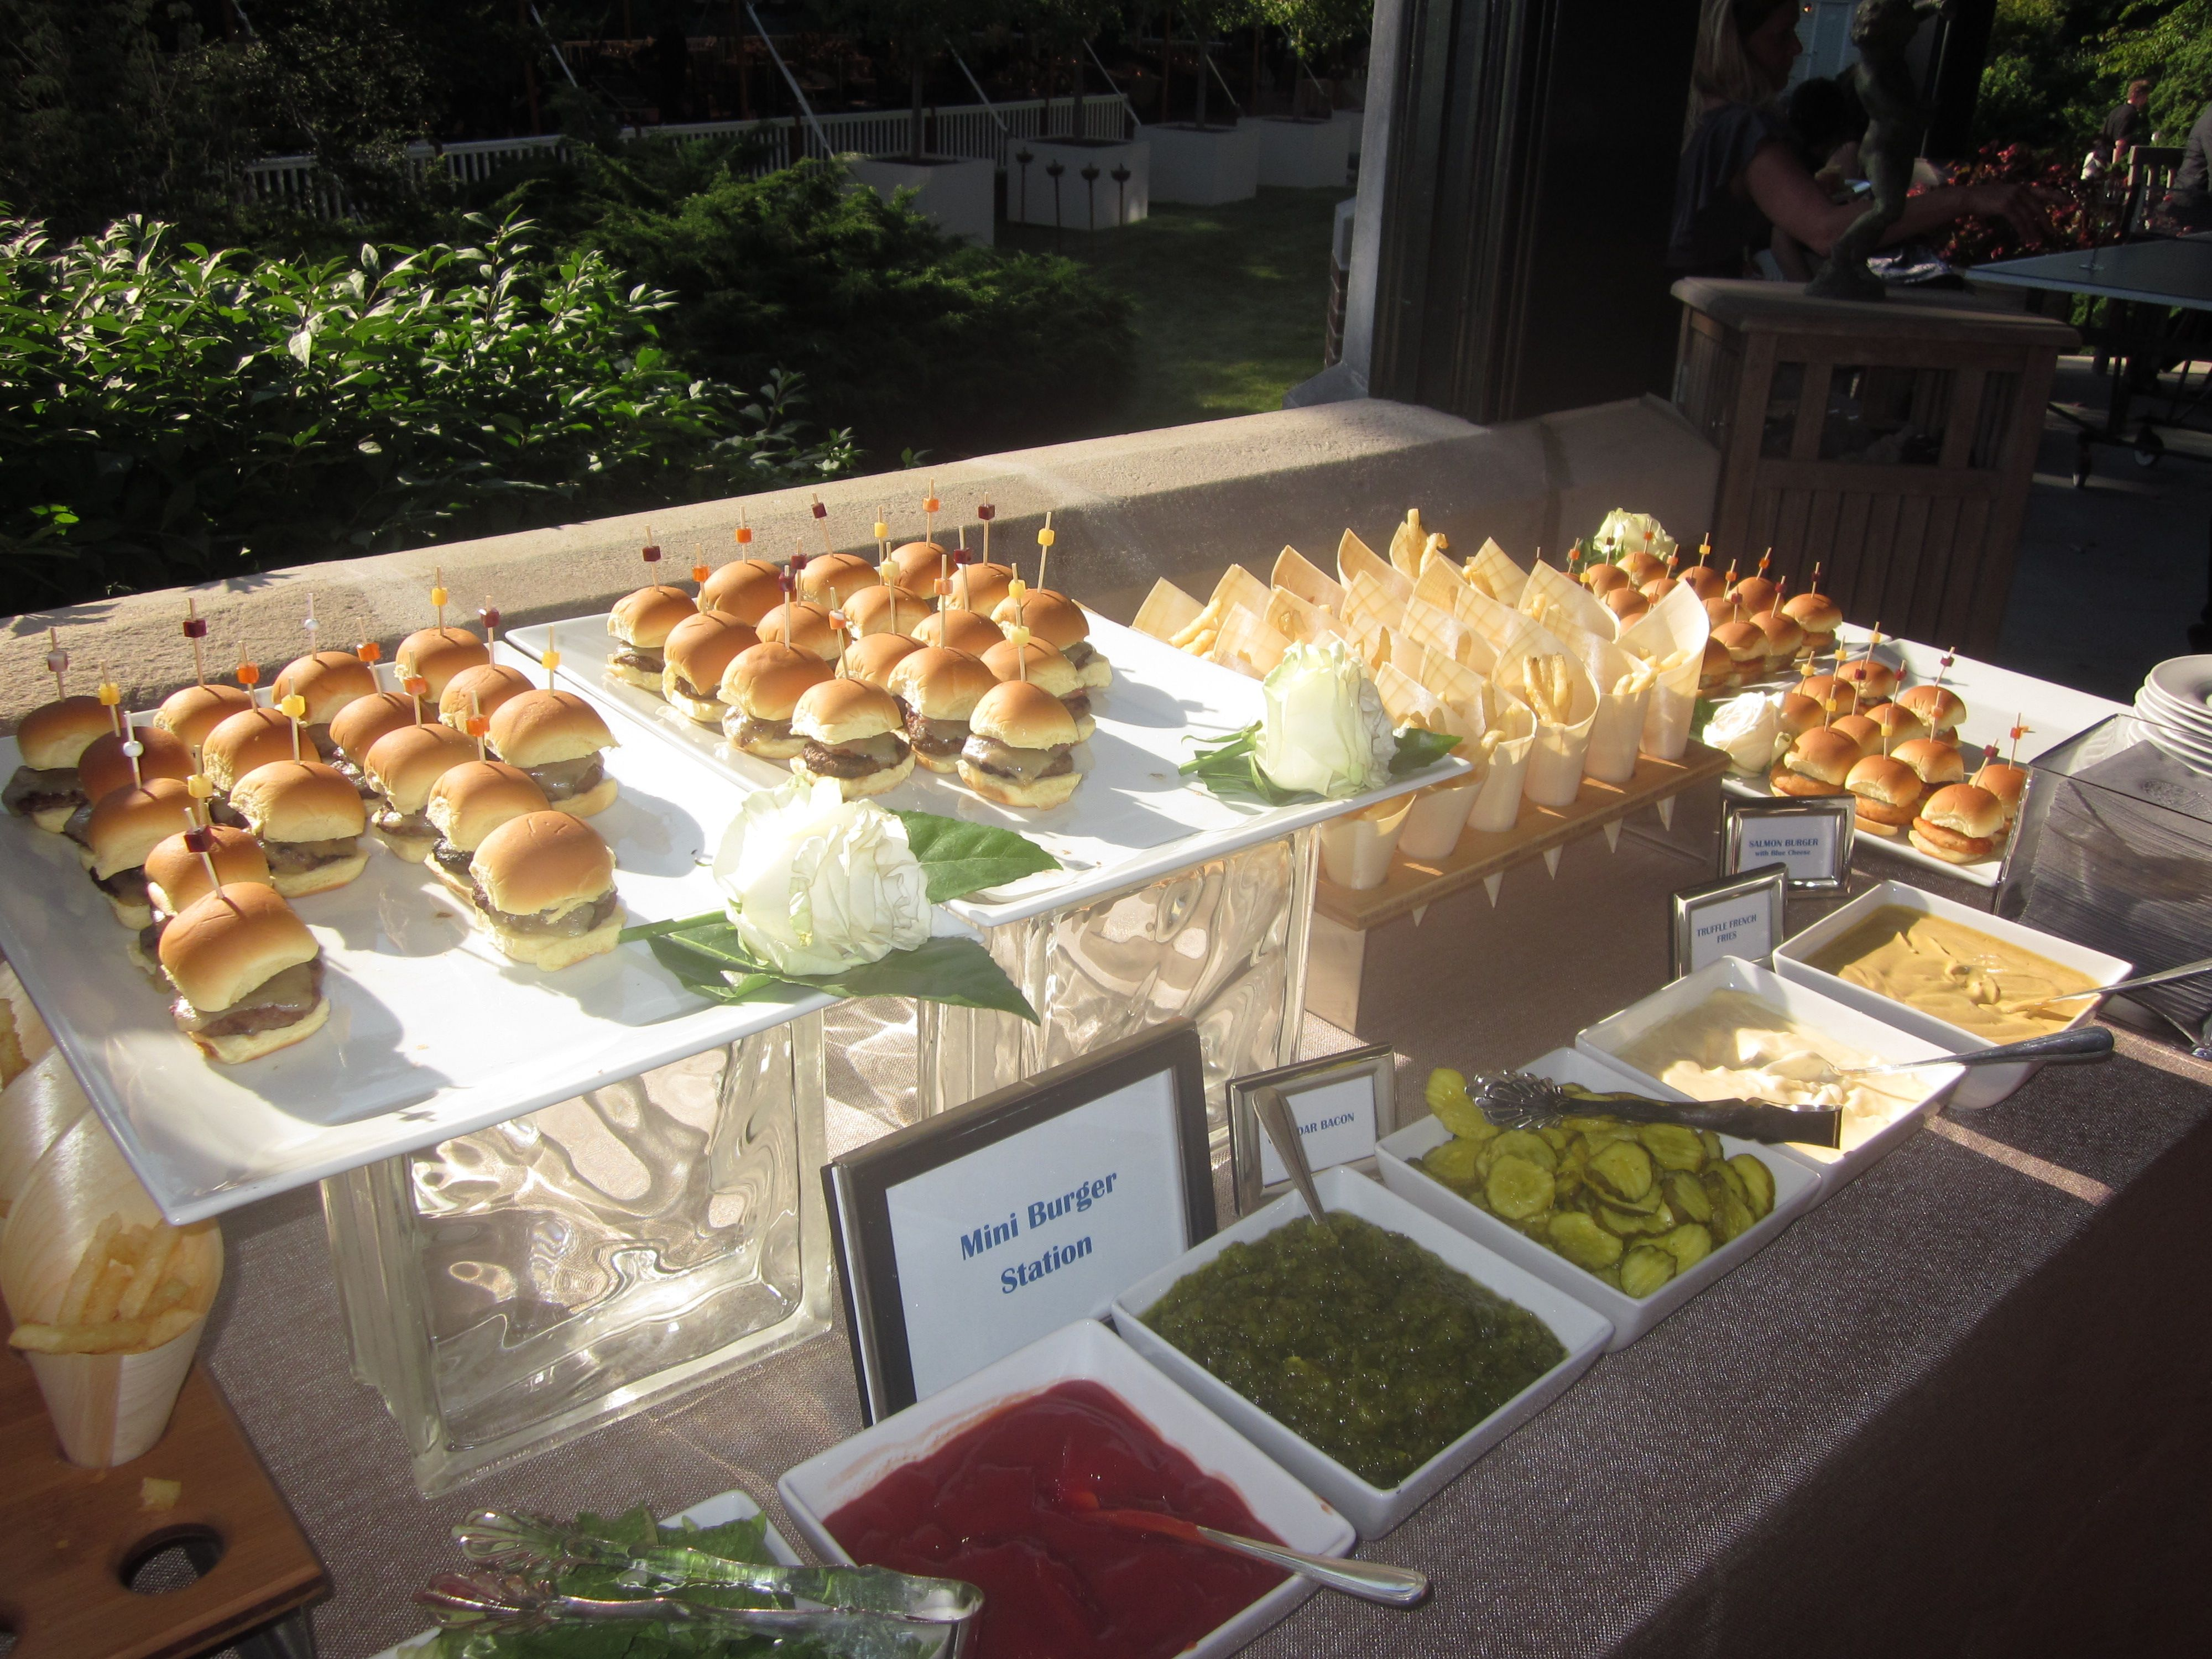 Wedding Food Ideas Get Creative I Do Knot: Capers Catering Slider Station With French Fry Cones